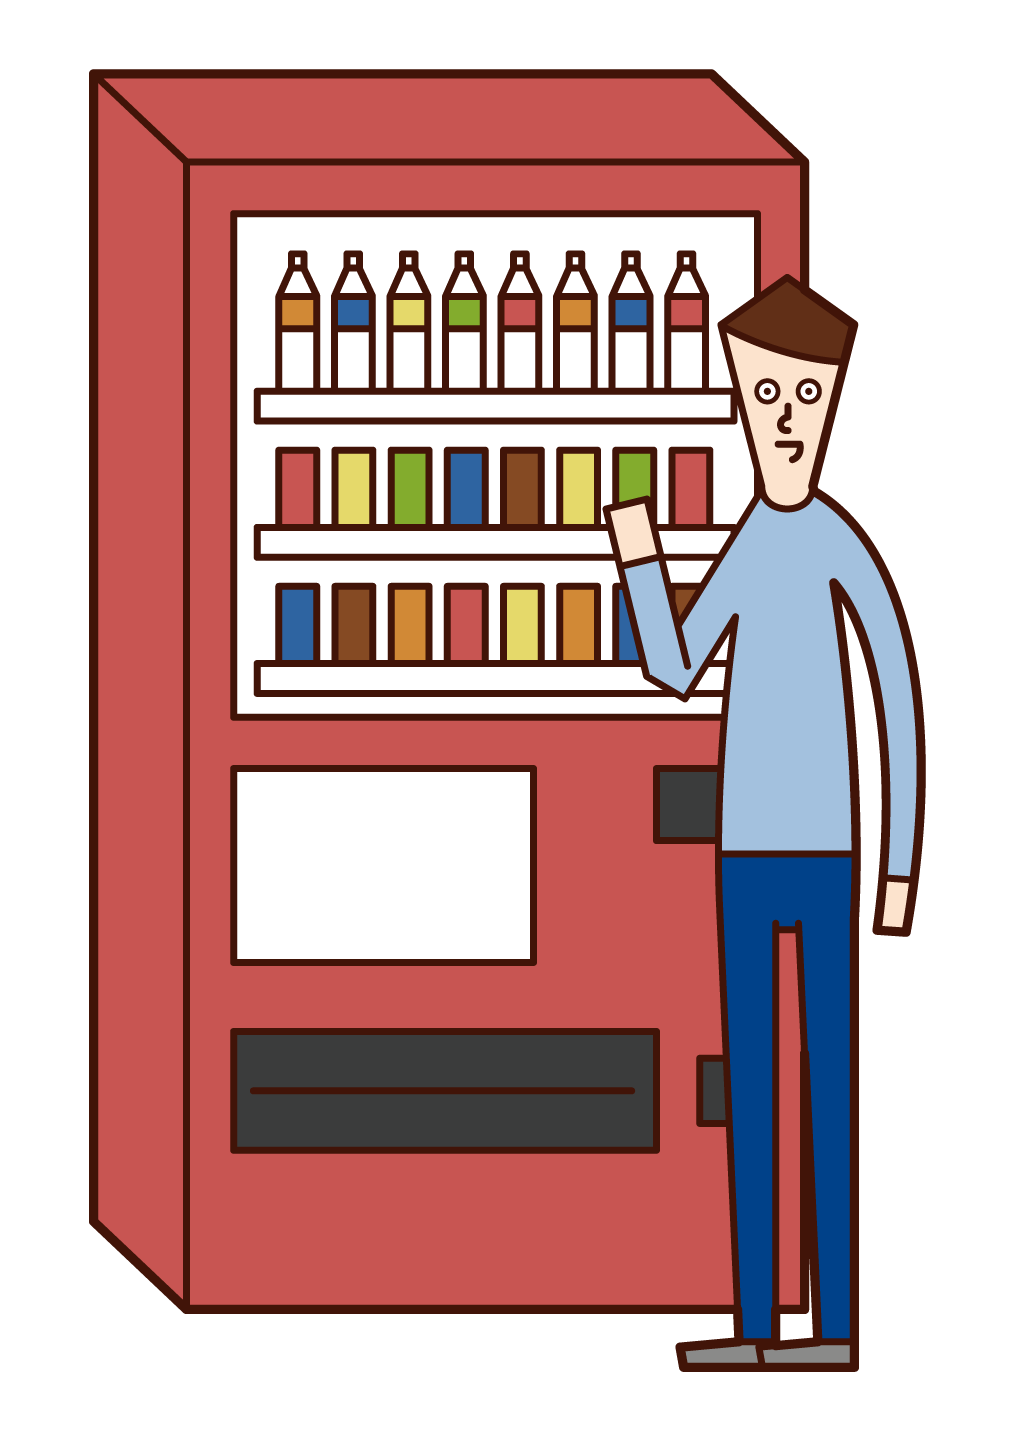 Illustration of a man buying a drink from a vending machine